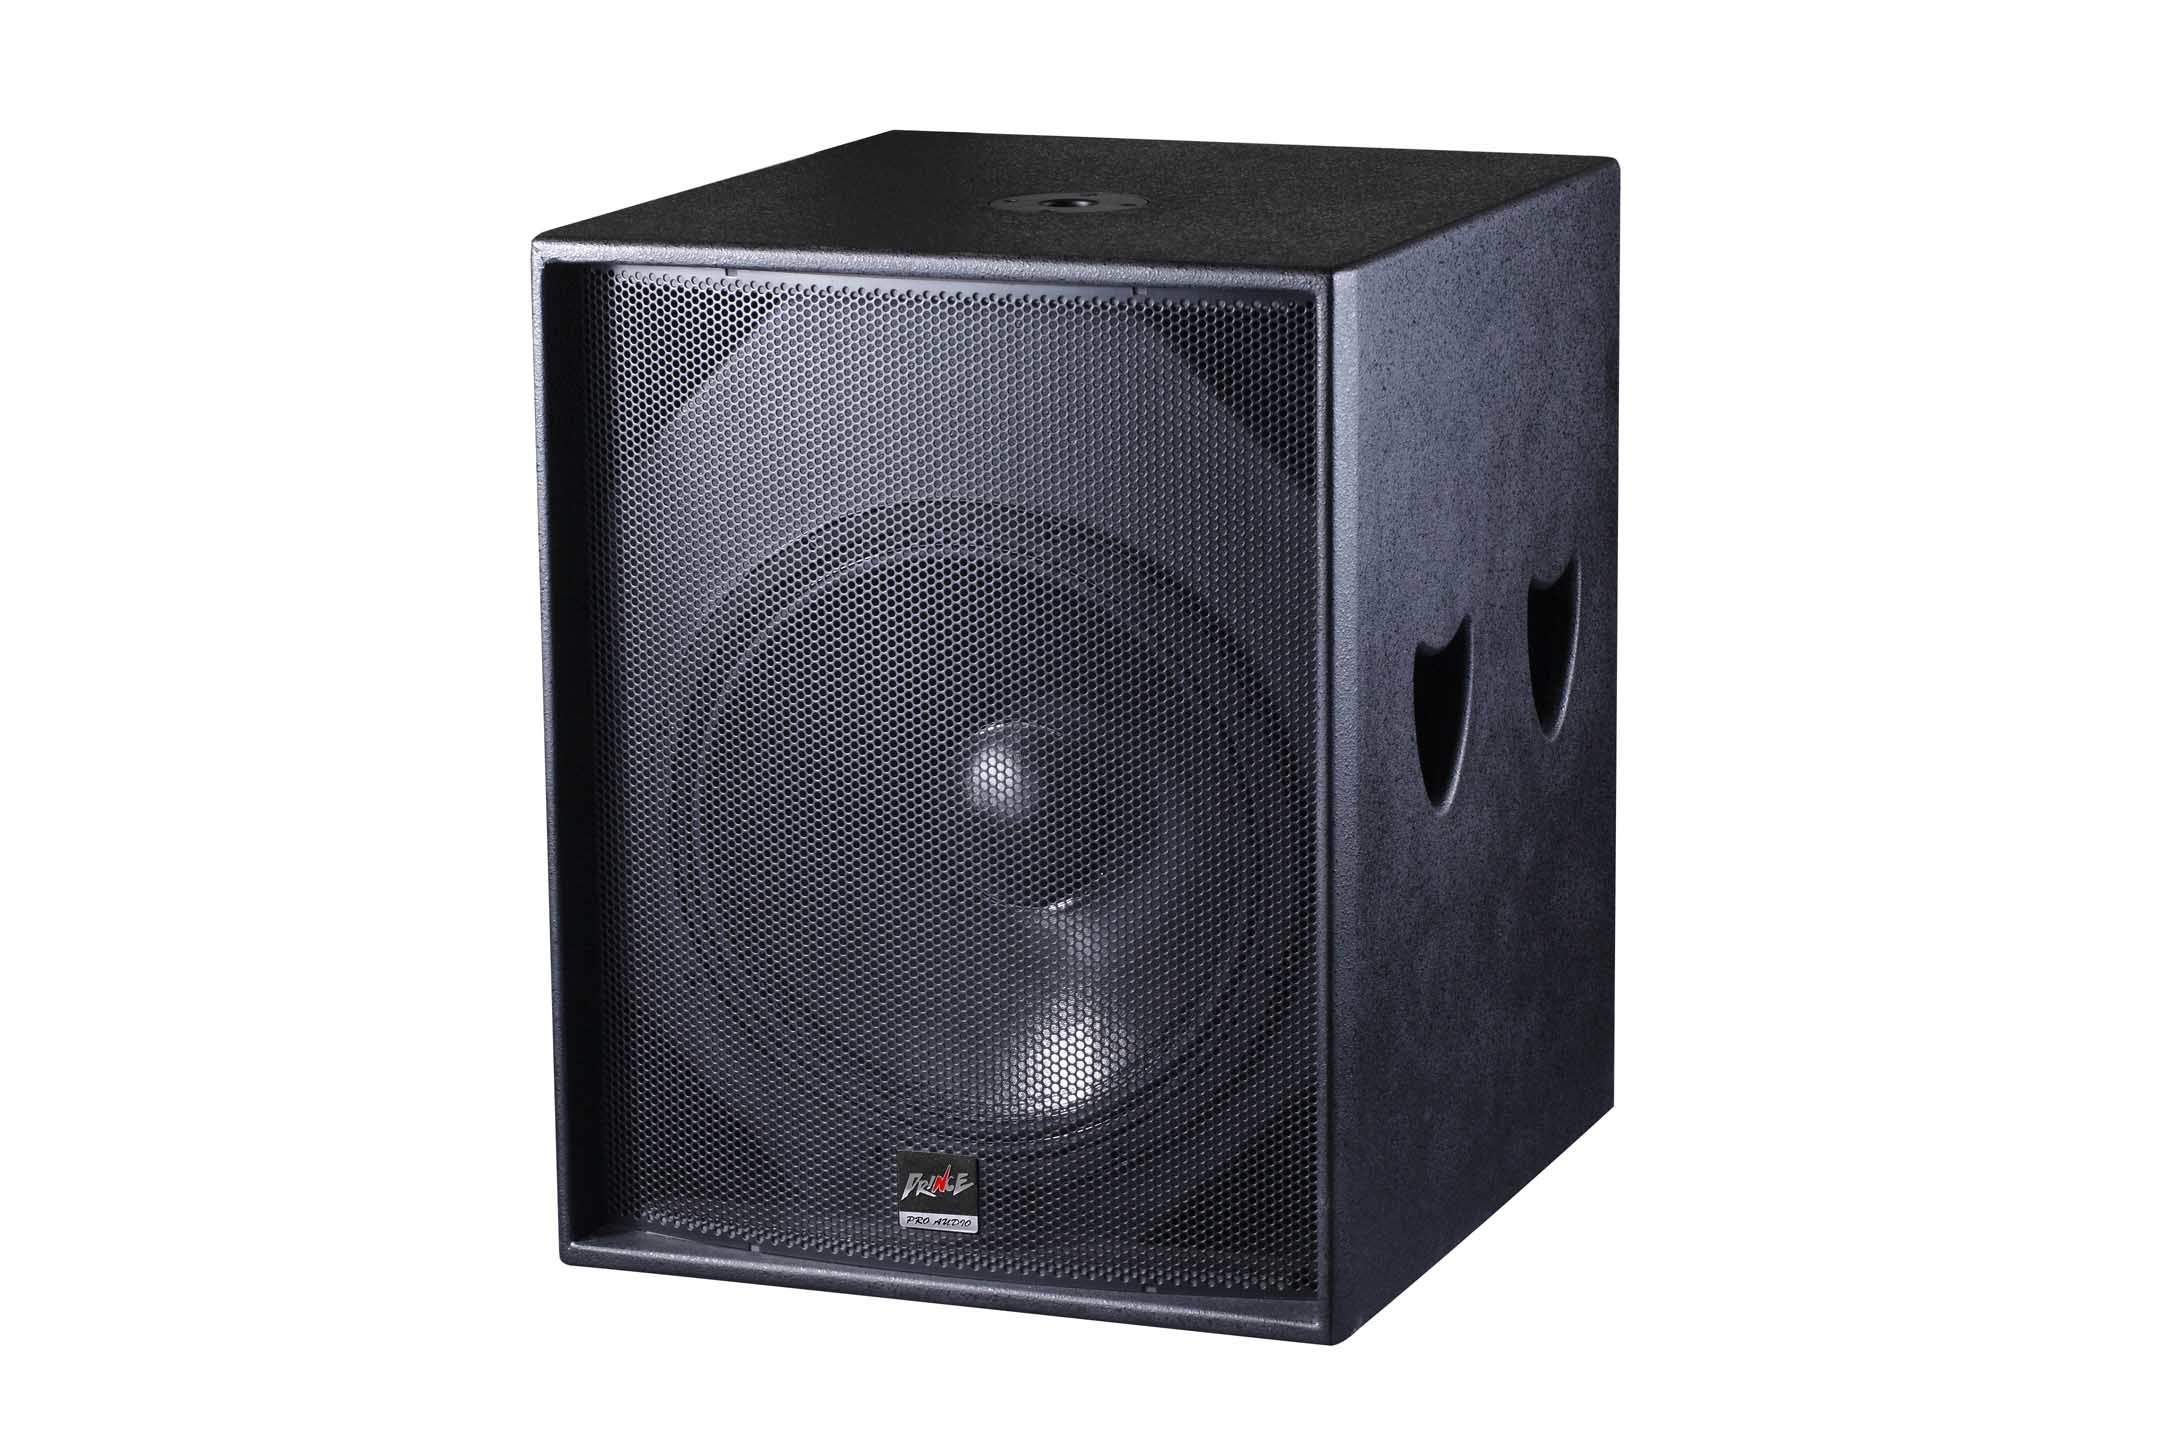 18inch High Power Ultra Compact Subwoofer PPR-718